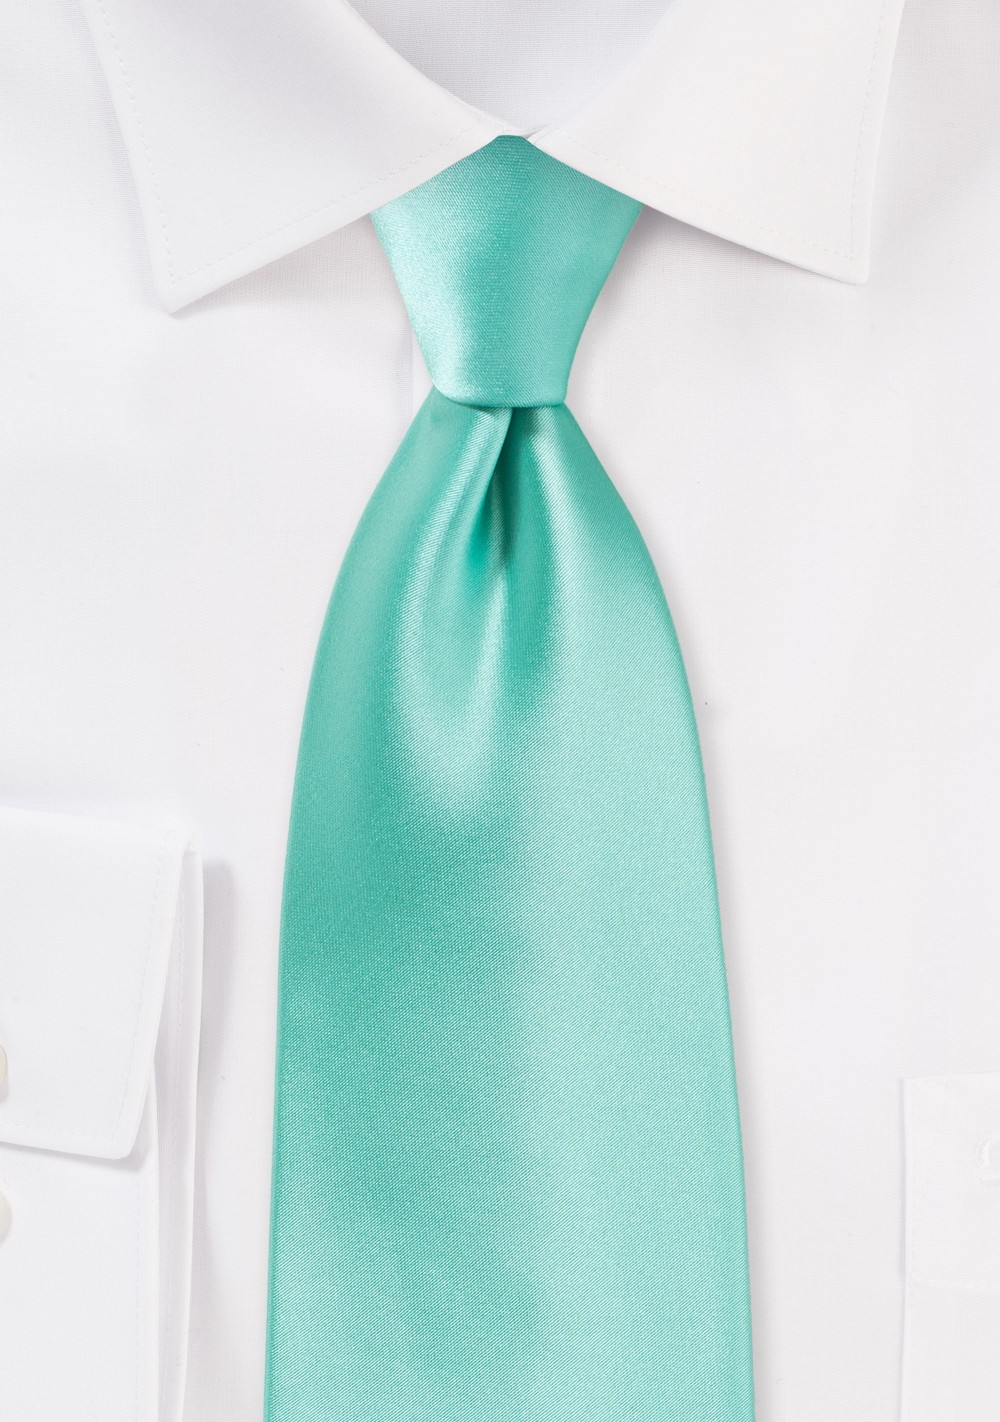 Beach Glass Color Tie in XL Length